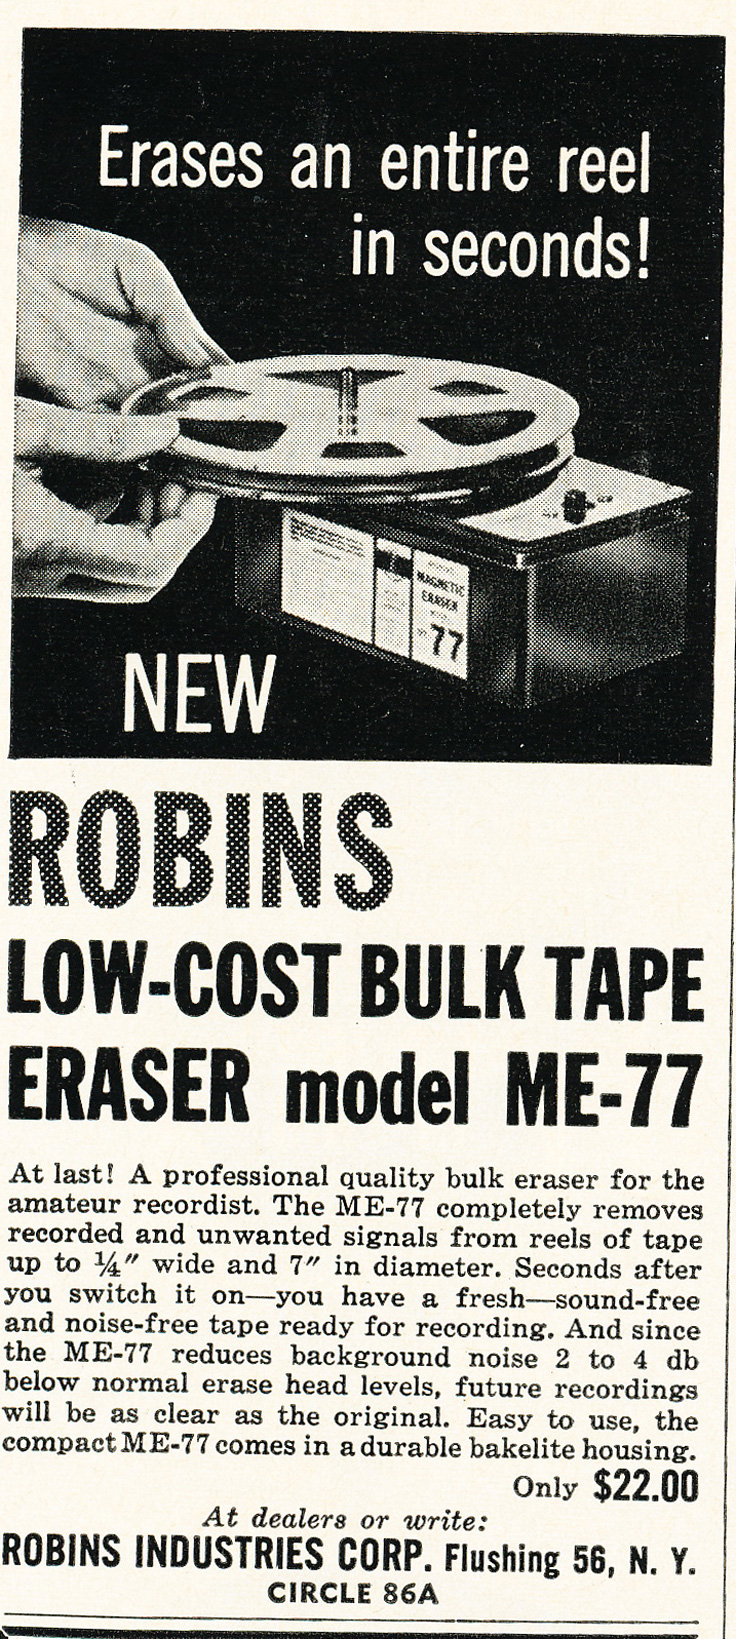 1961 ad for Robins Bulk tape eraser M-77 in Reel2ReelTexas.com's vintage recording collection